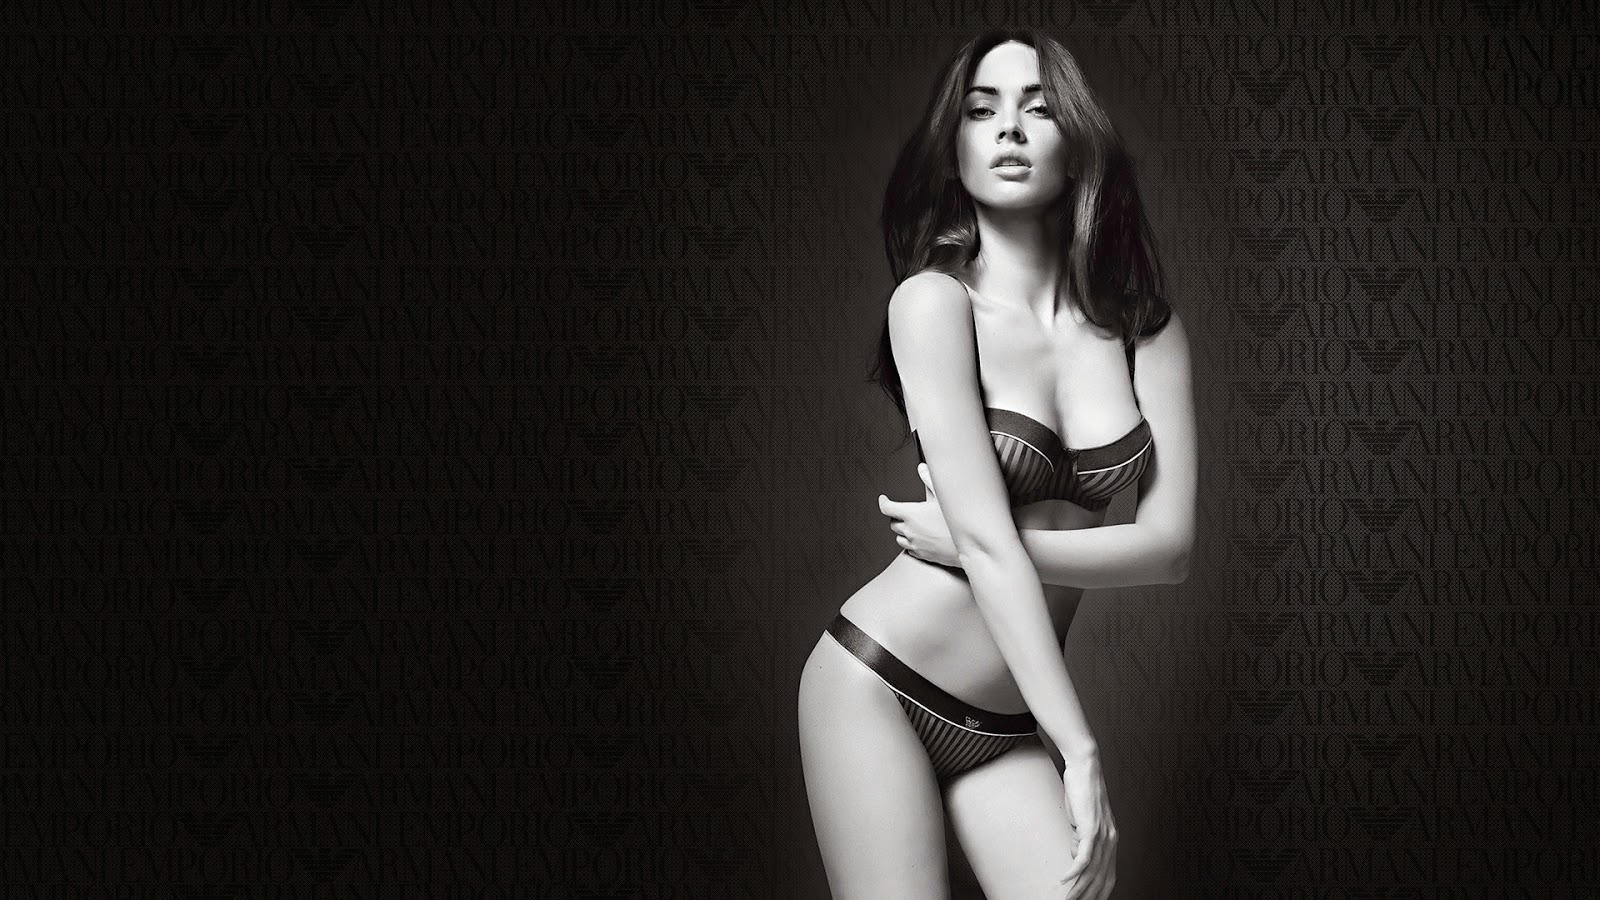 Beauty Megan Fox Bikini Black and White HD Wallpapers. Megan Fox Bikini Black and White Photos on http://1styahoo.blogspot.com/.